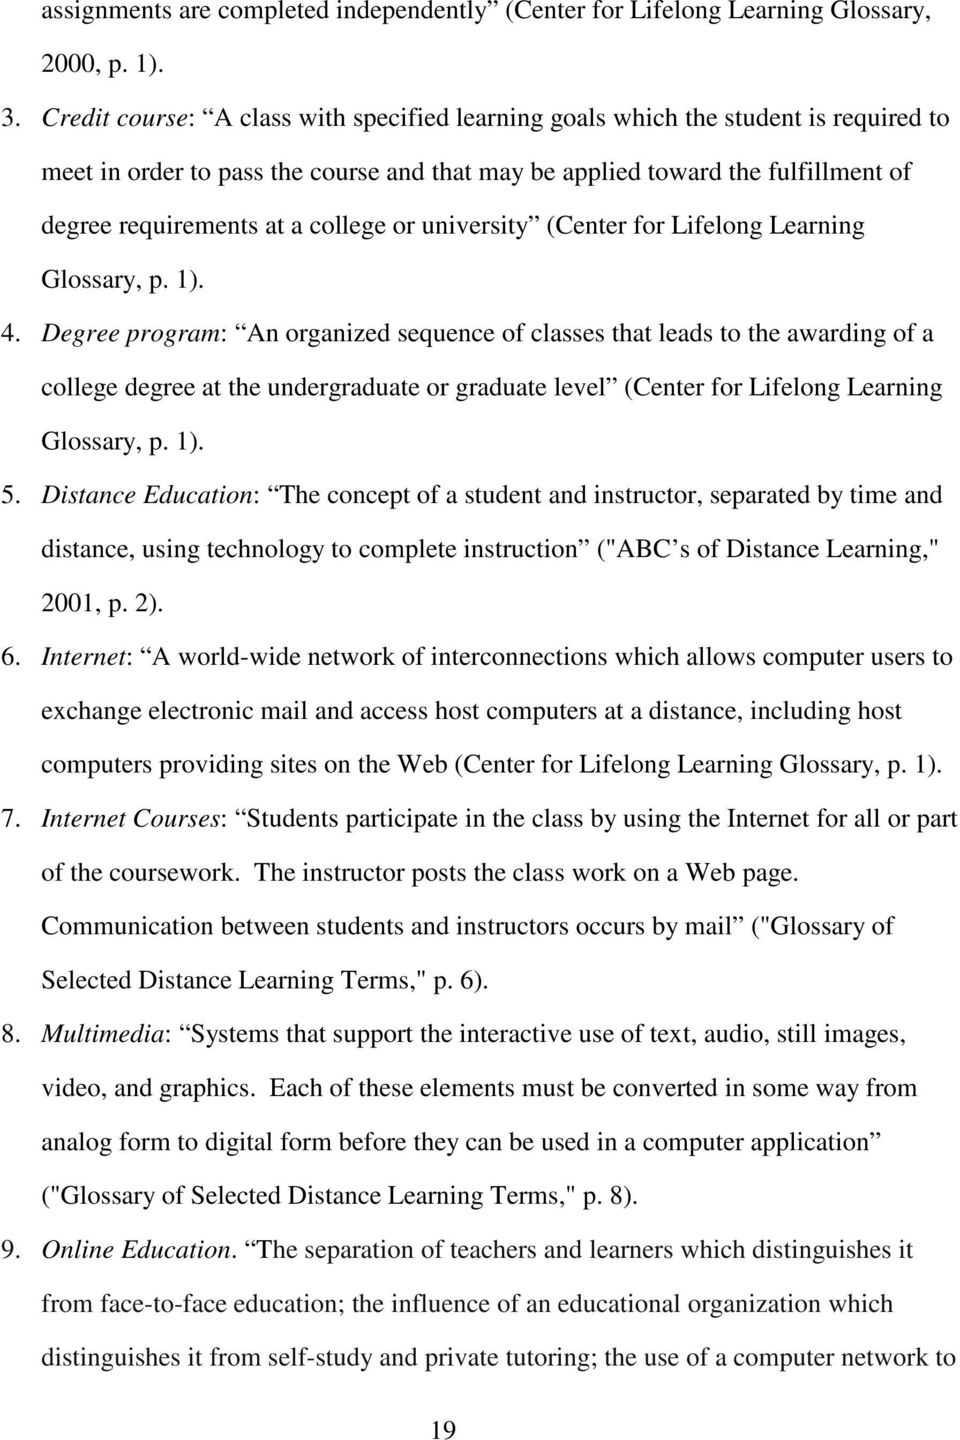 college or university (Center for Lifelong Learning Glossary, p. 1). 4.